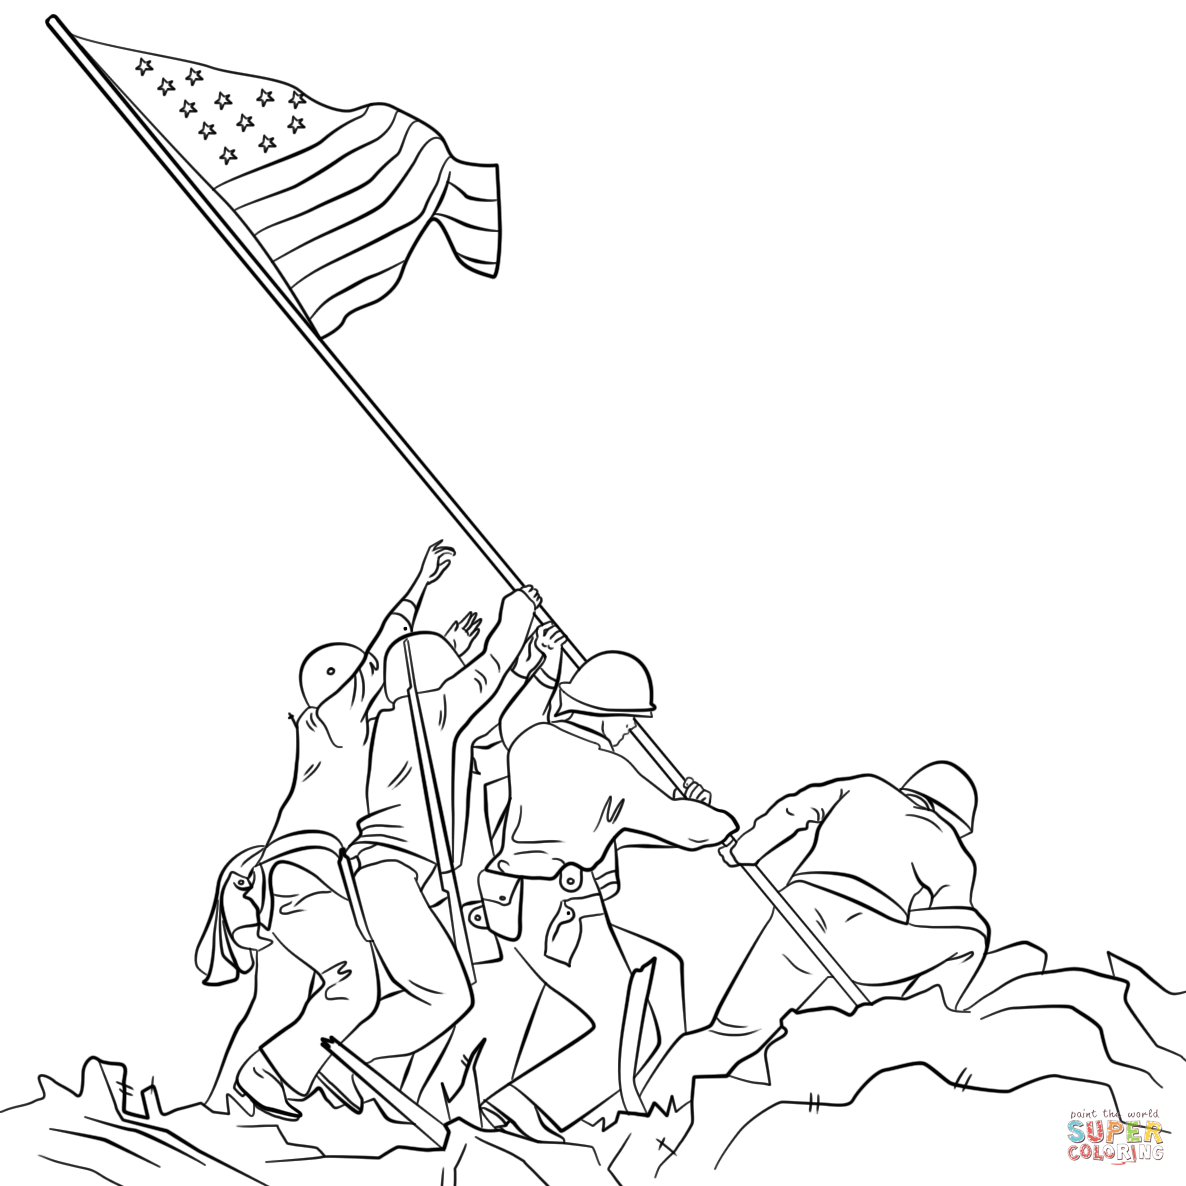 world war ii coloring pages world war ii in pictures veterans day coloring pages coloring war world ii pages